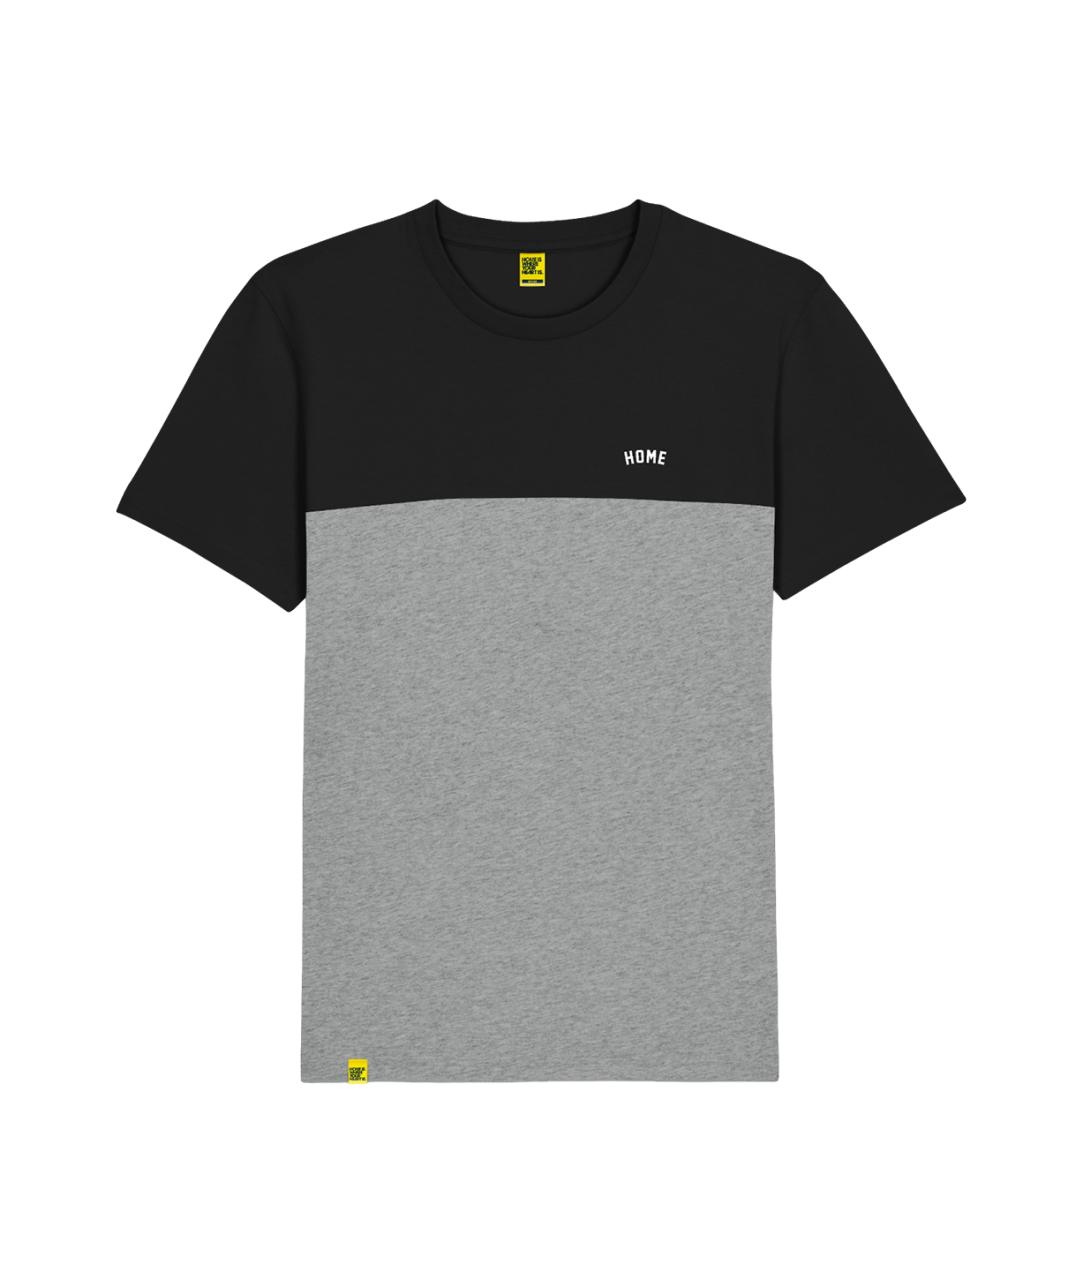 Home 2-Color T-Shirt